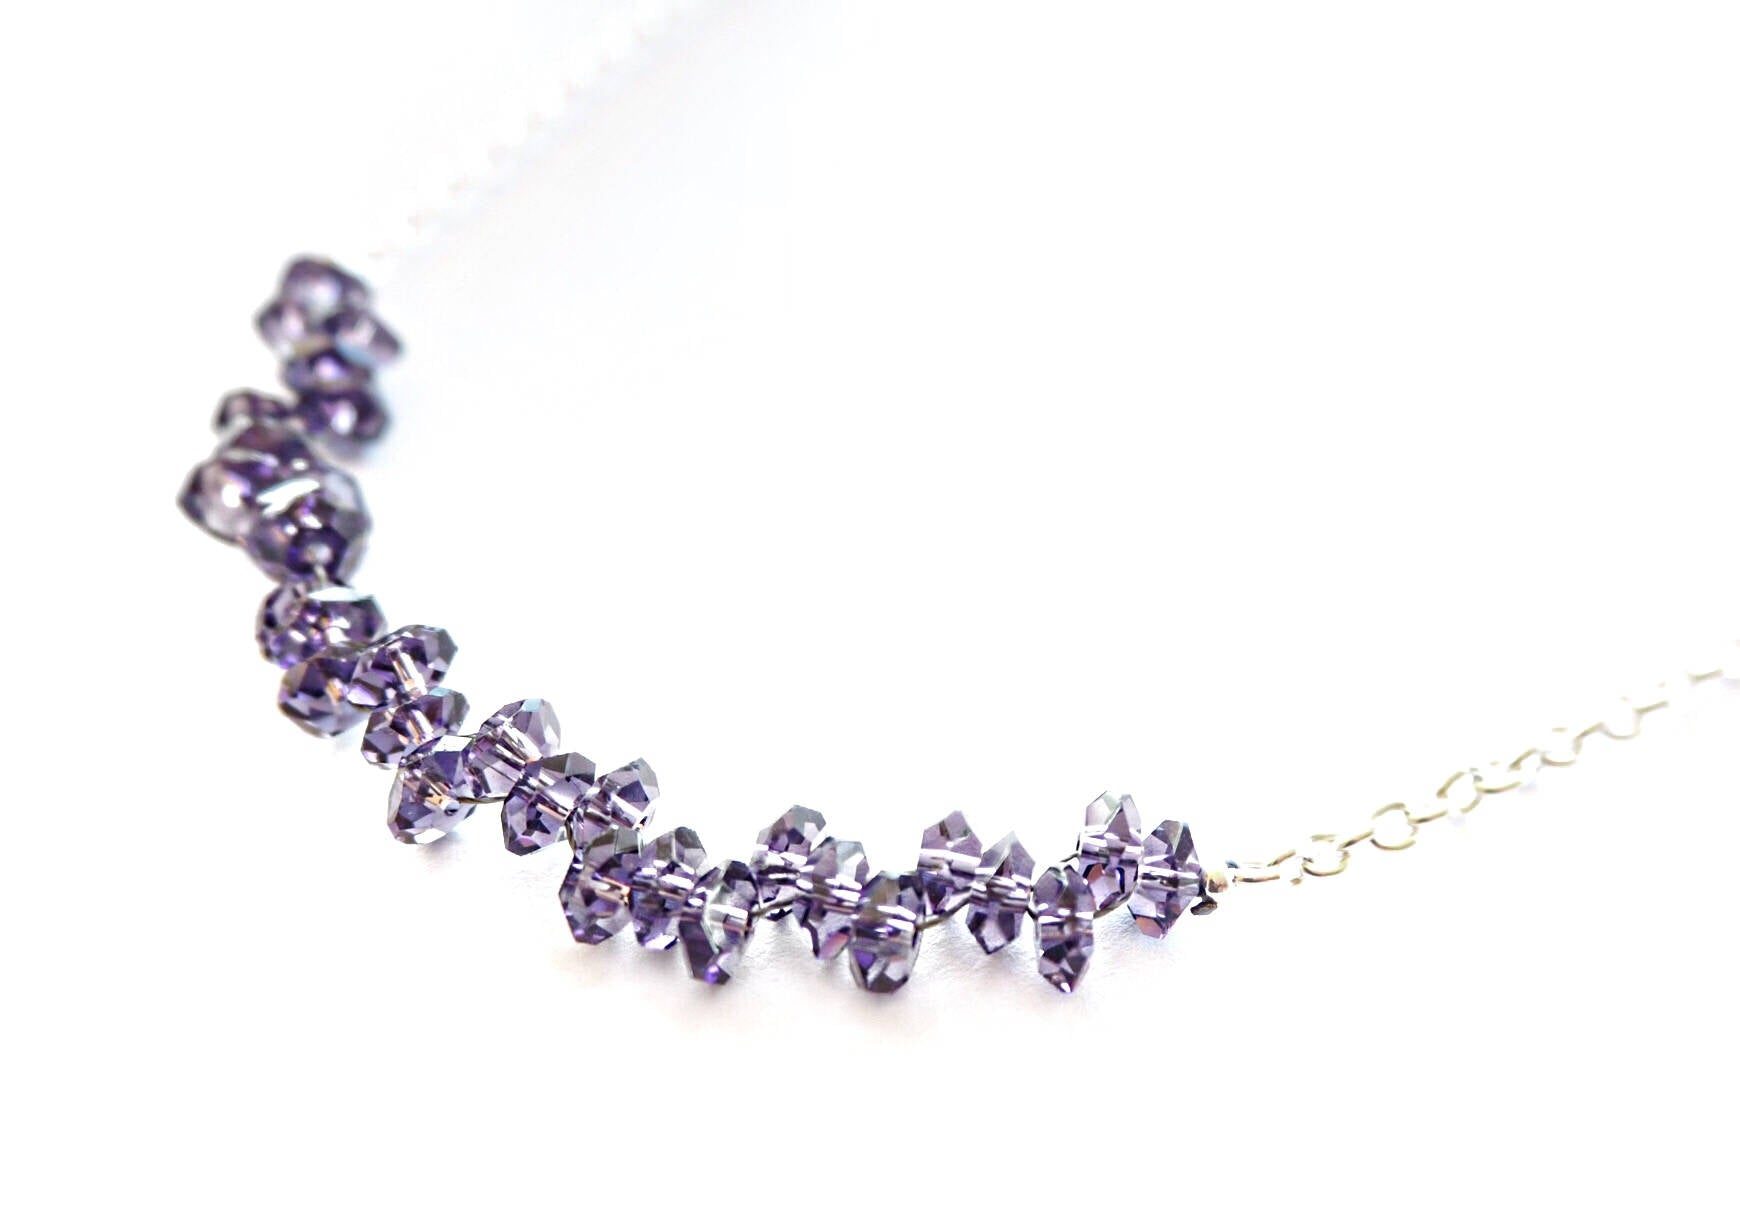 Amethyst quartz rondelles and silver chain necklace